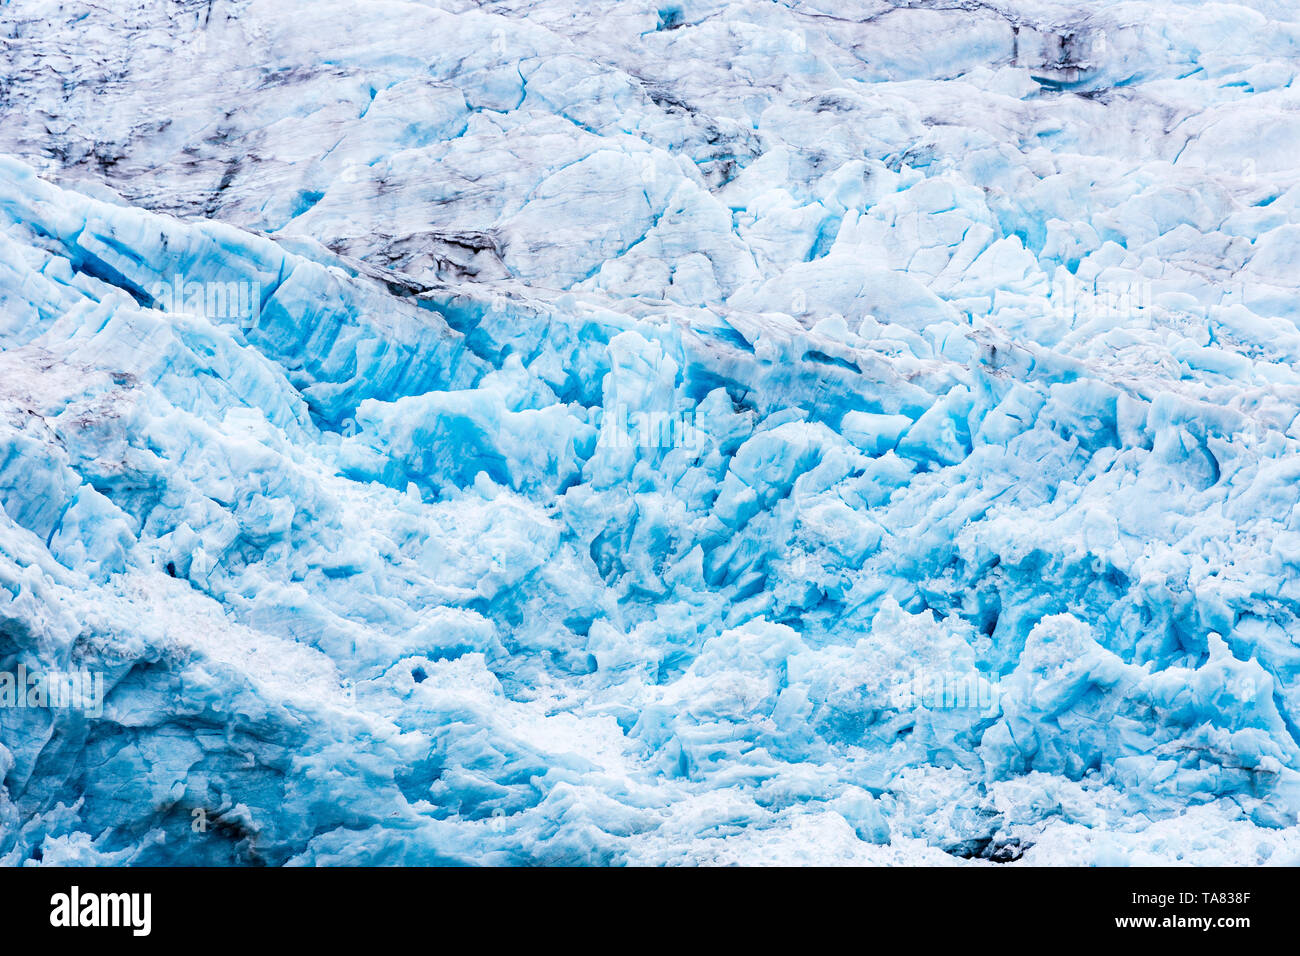 At the edge of the glacier Nordenskiöldbreen near Pyramiden, on the coast of Billefjord, Svalbard. Norway - Stock Image